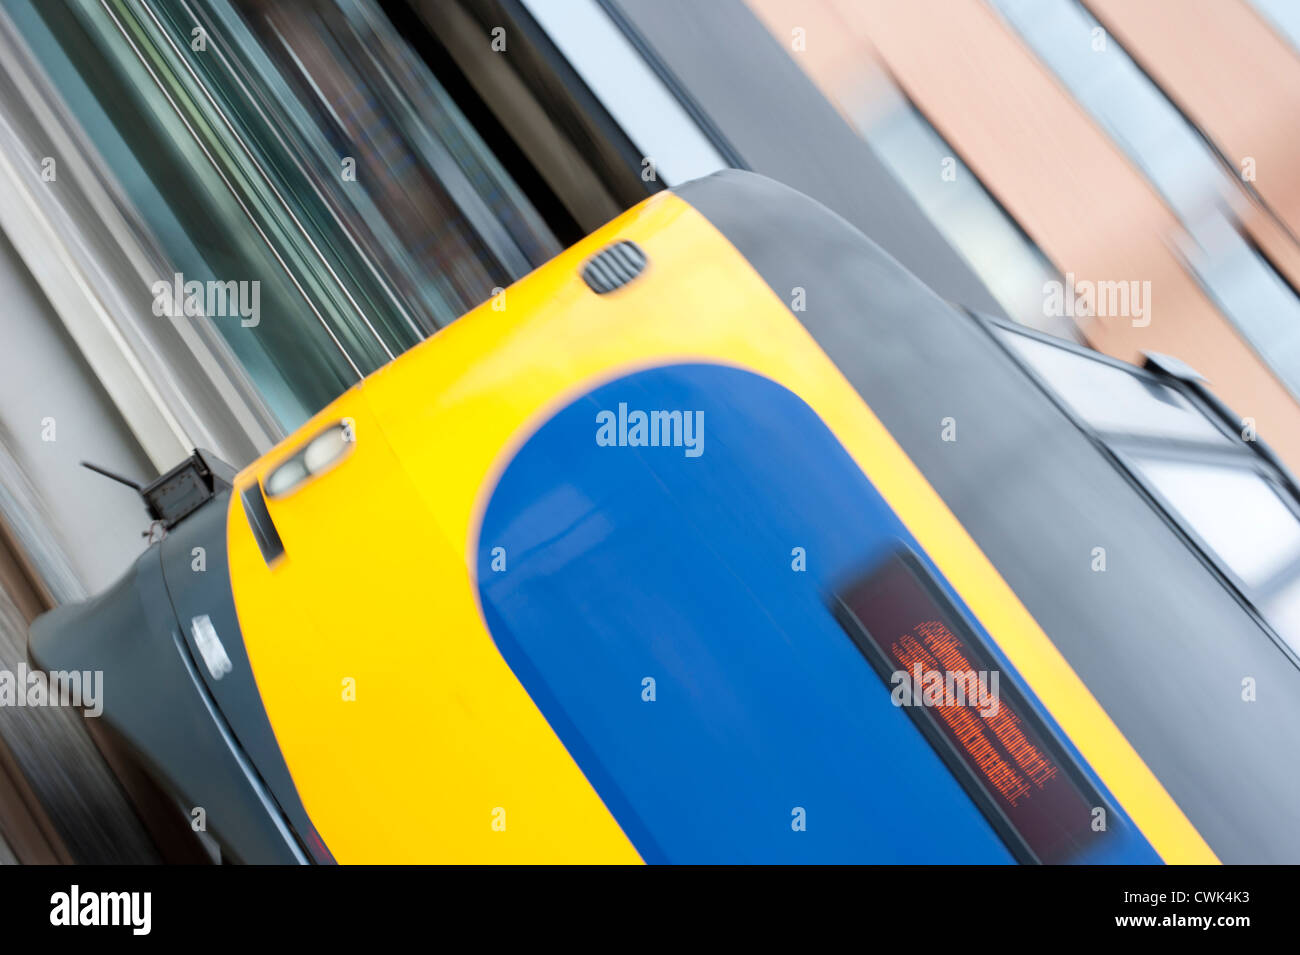 Panning images of a train entering the train station - Stock Image